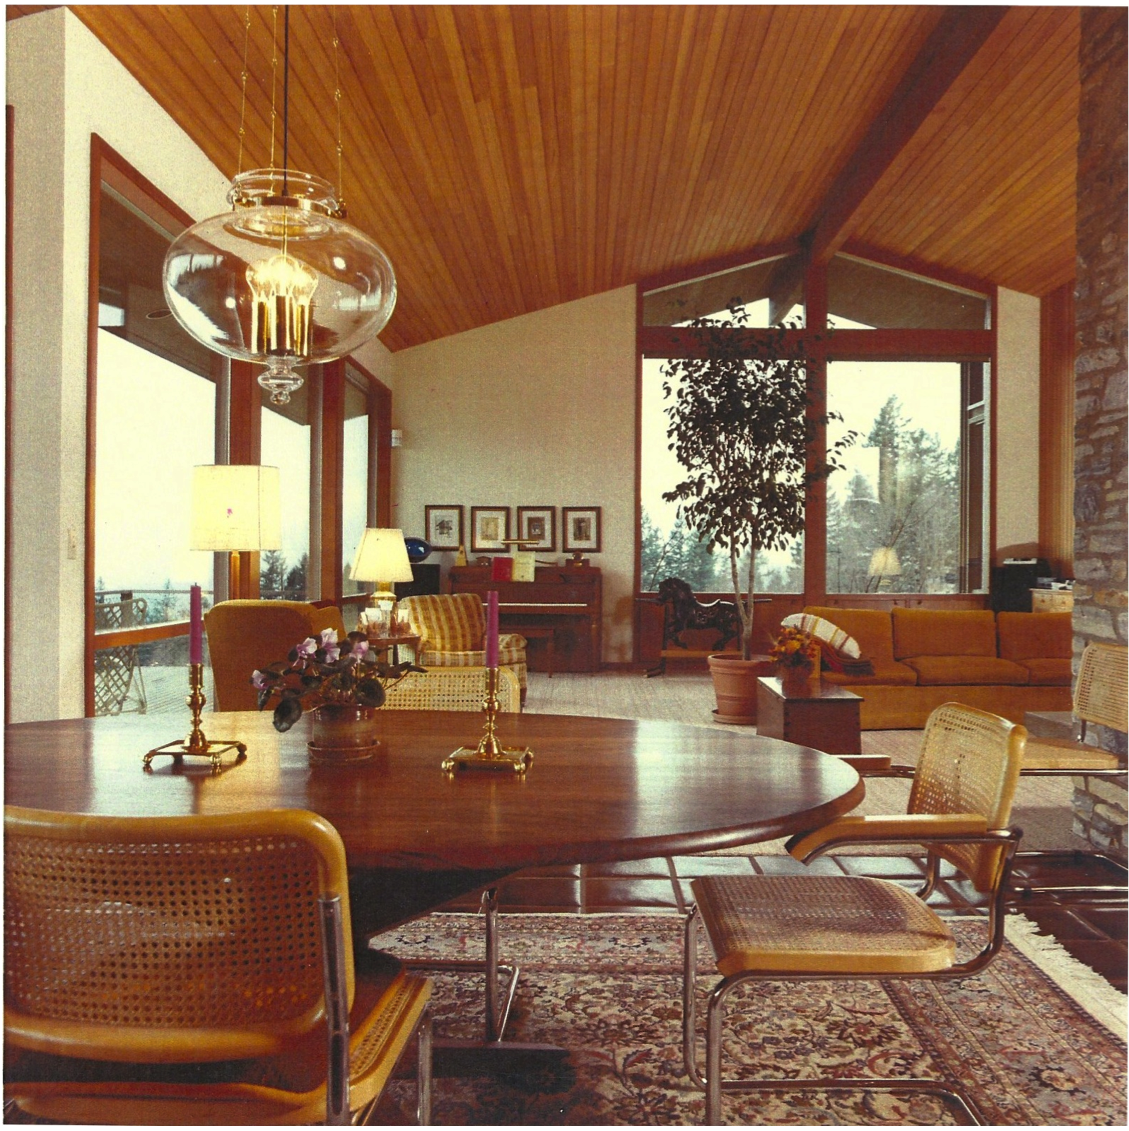 Interior Home Office Design Ideas Pictures Photos Of House: Interior Of The Papworth House C. 1980. The Home Was